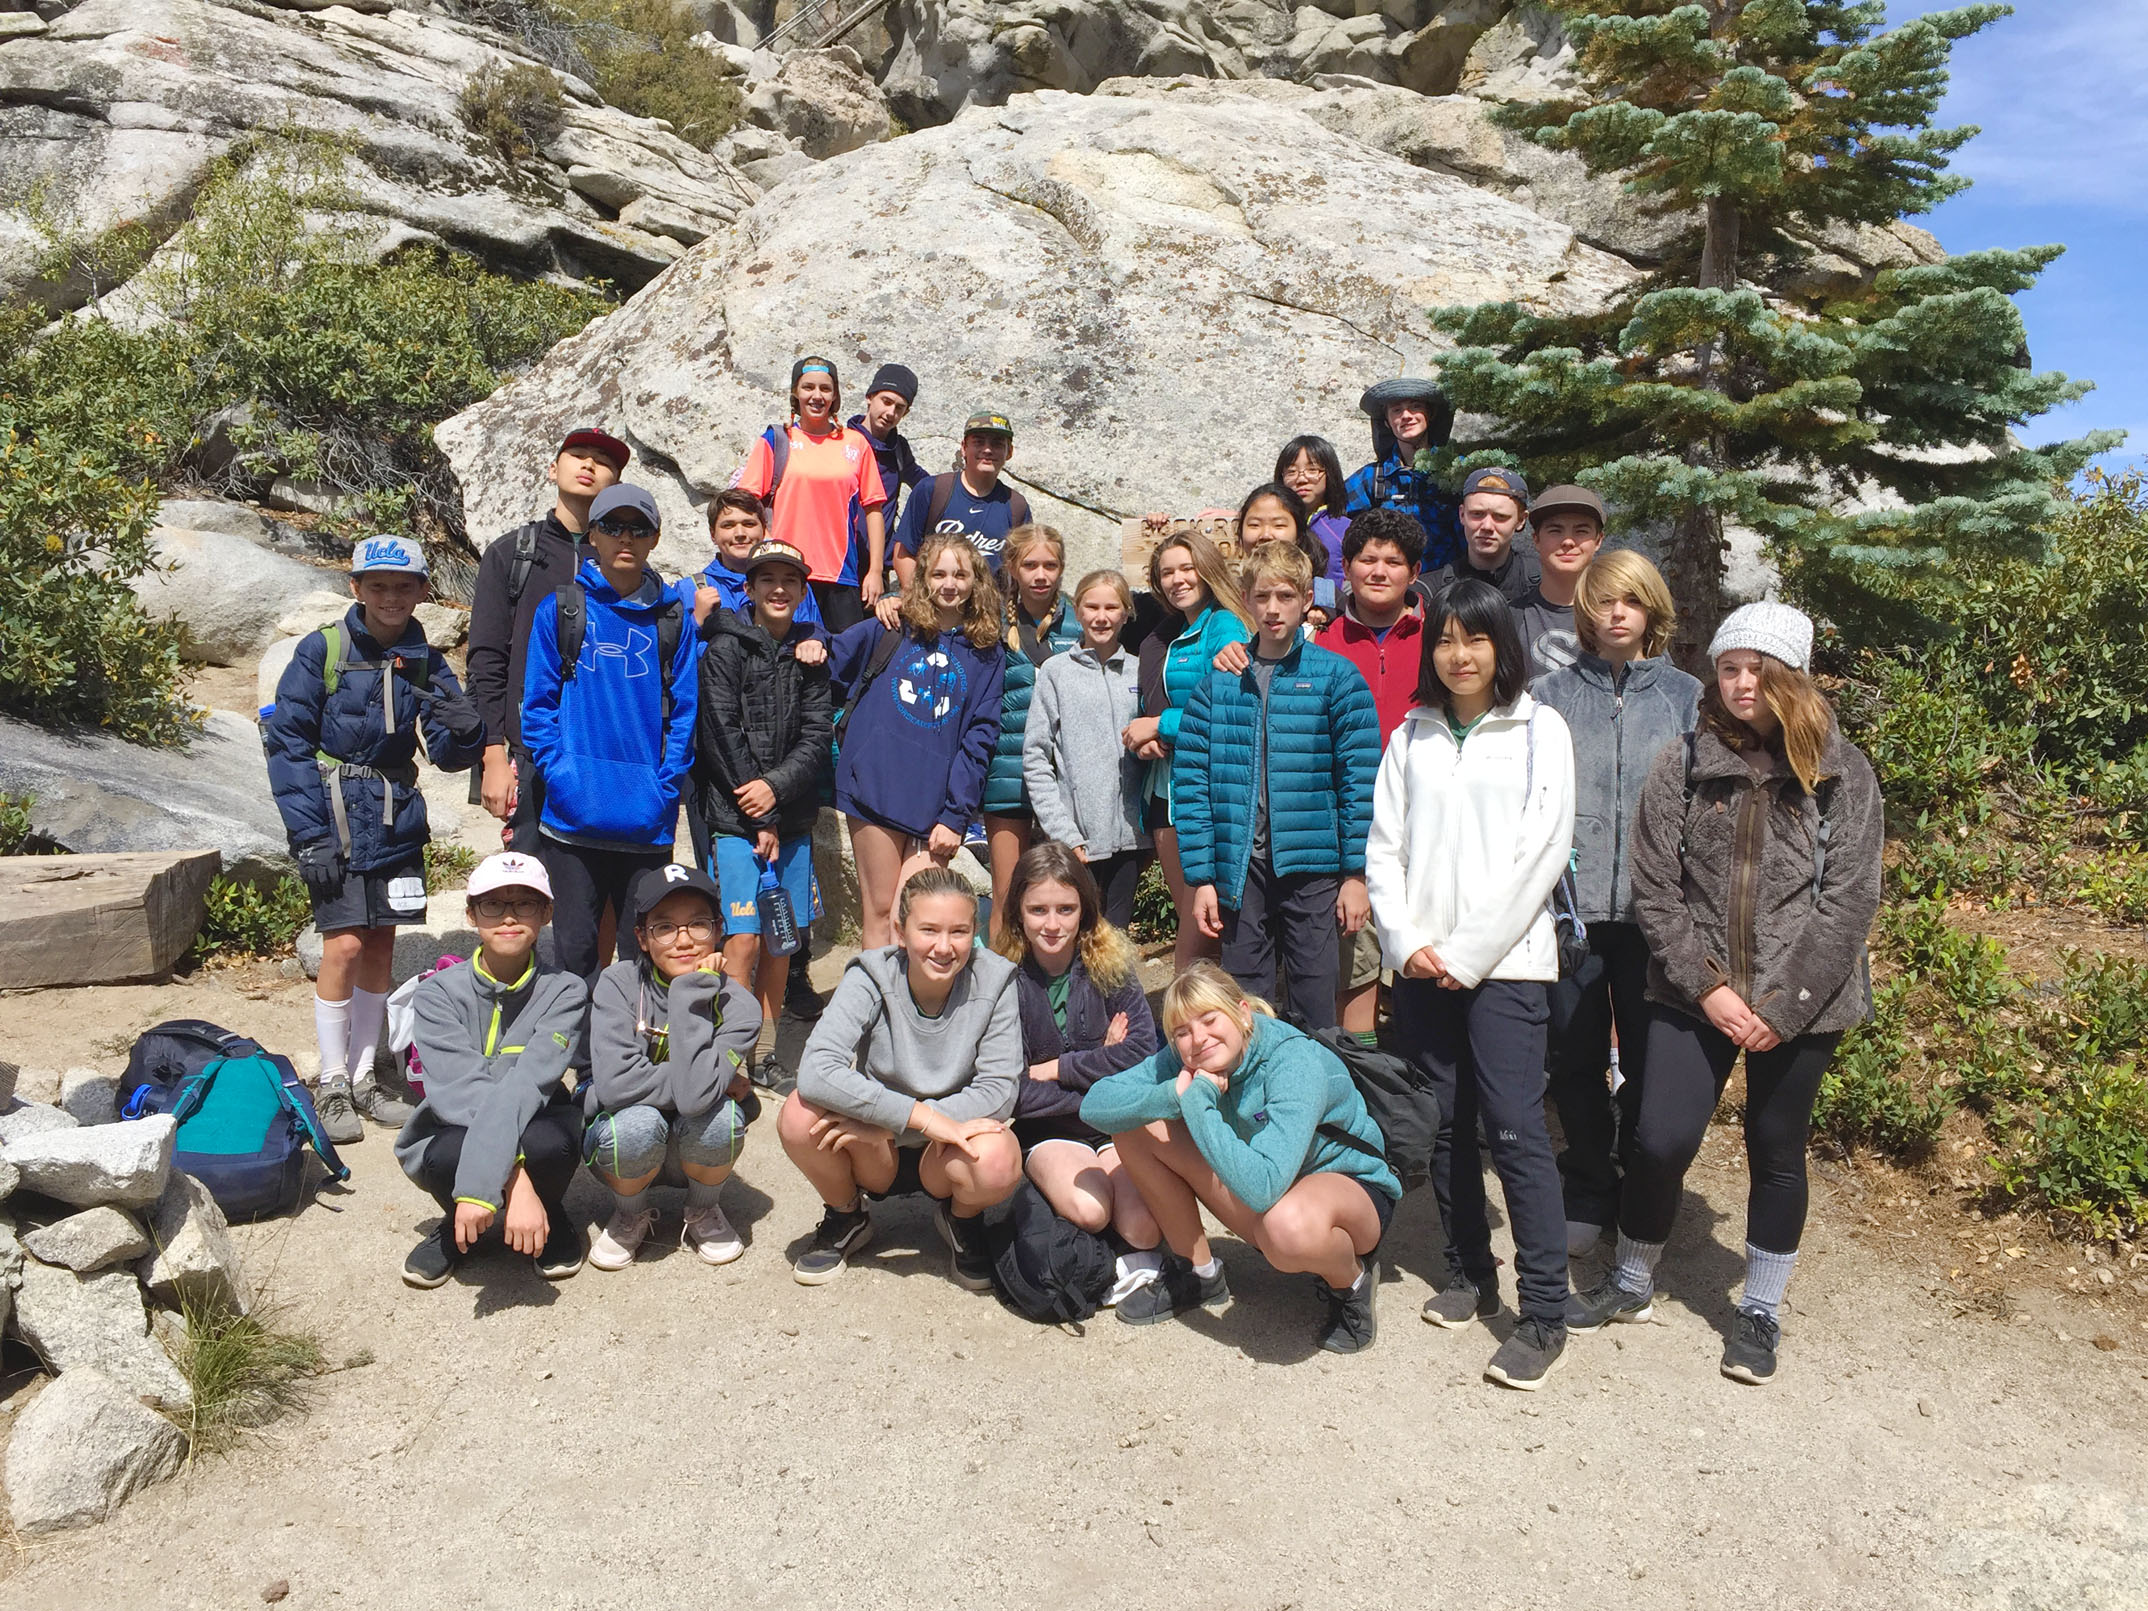 8th grade camping: Sequoia National Park - Ojai Valley